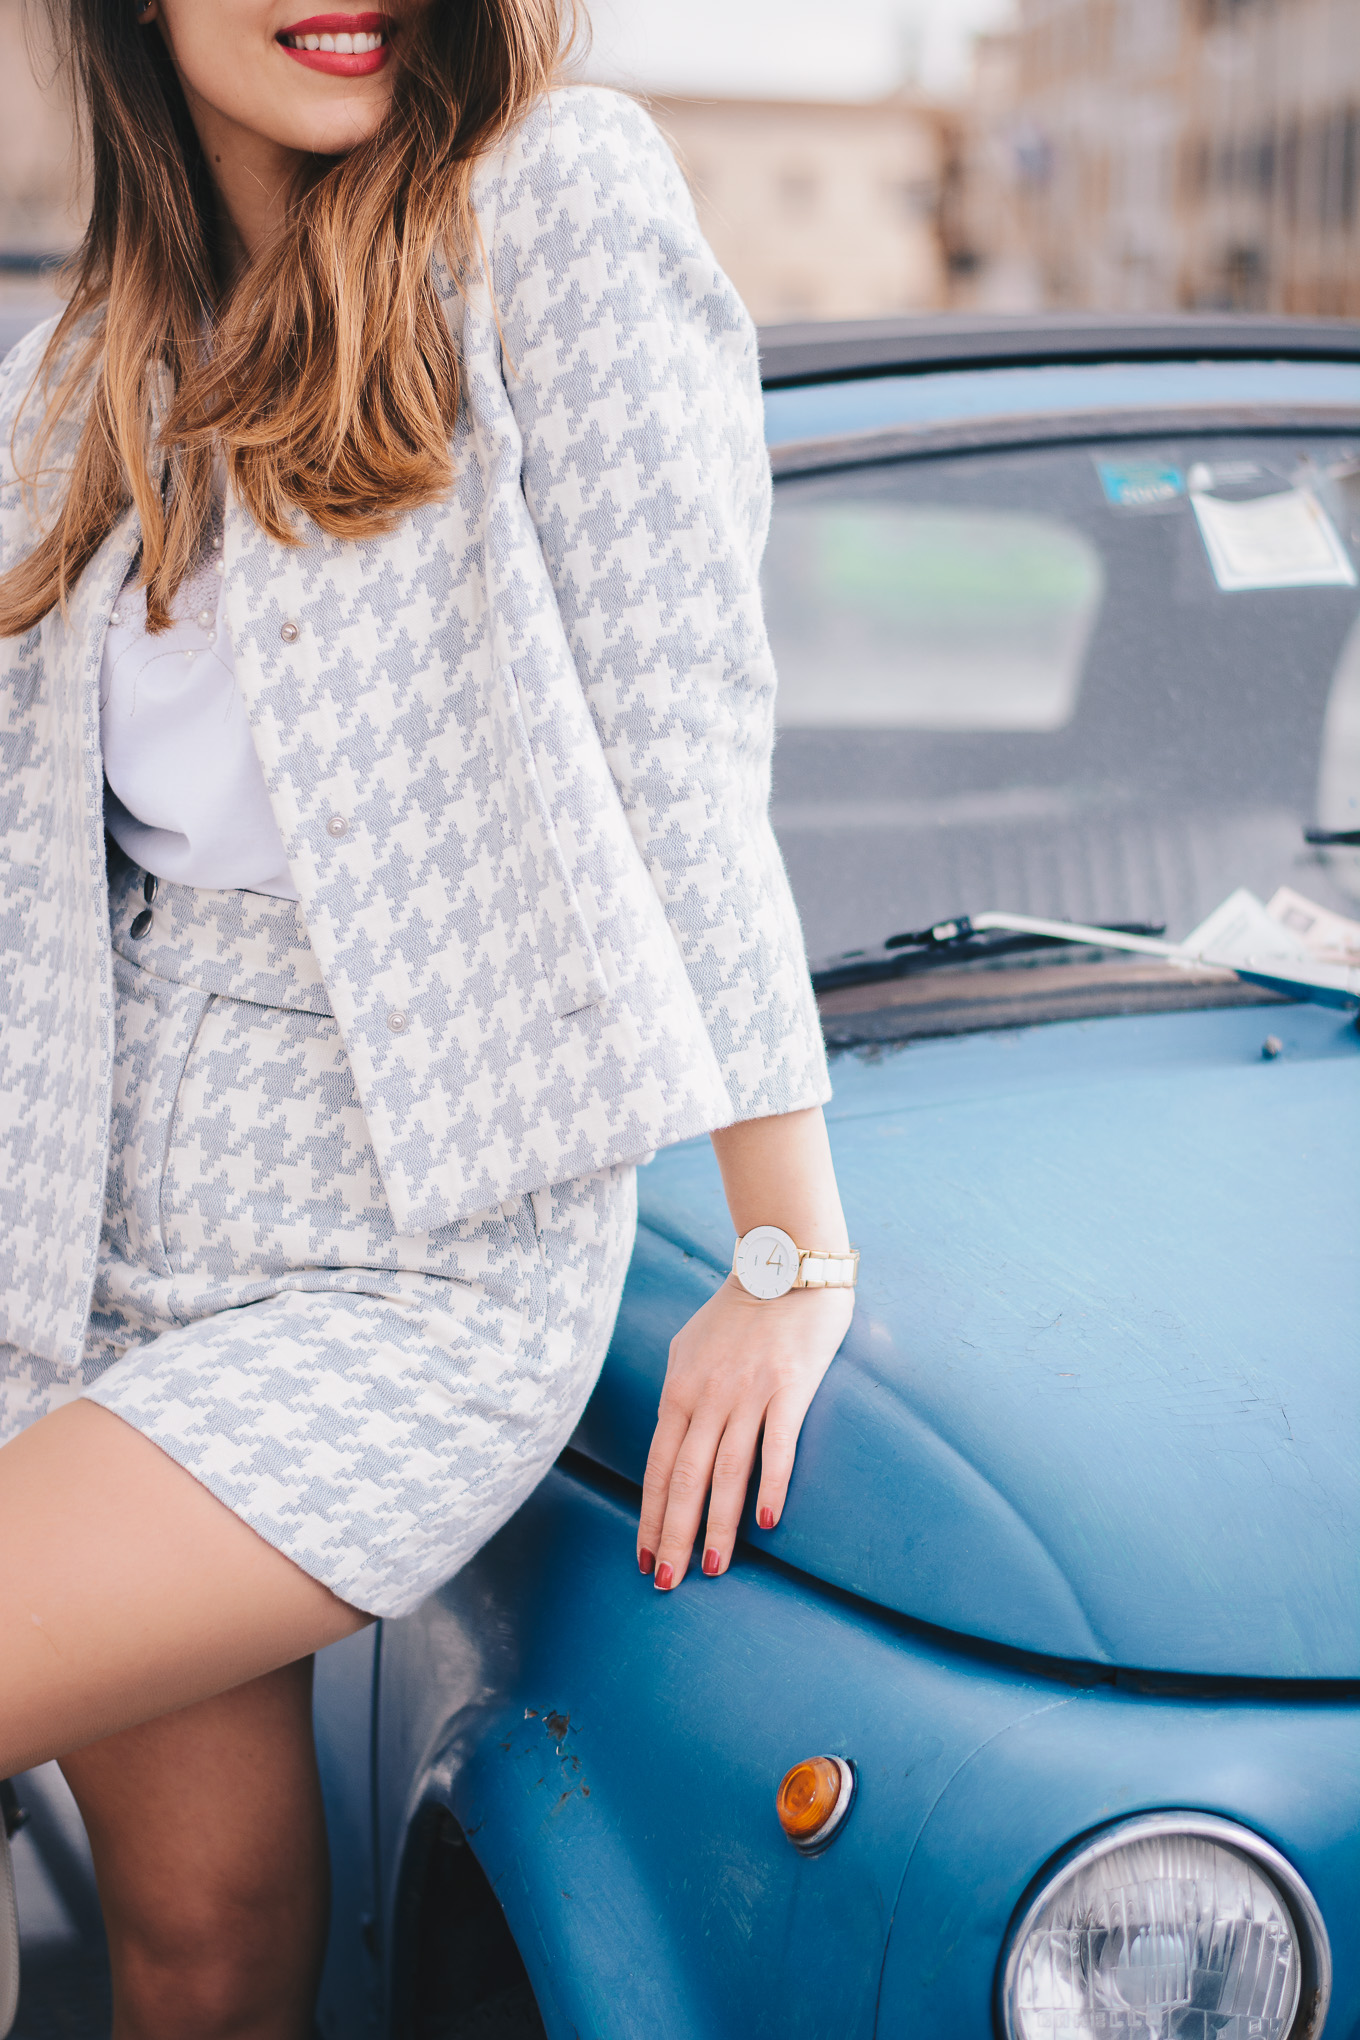 style houndstooth suit